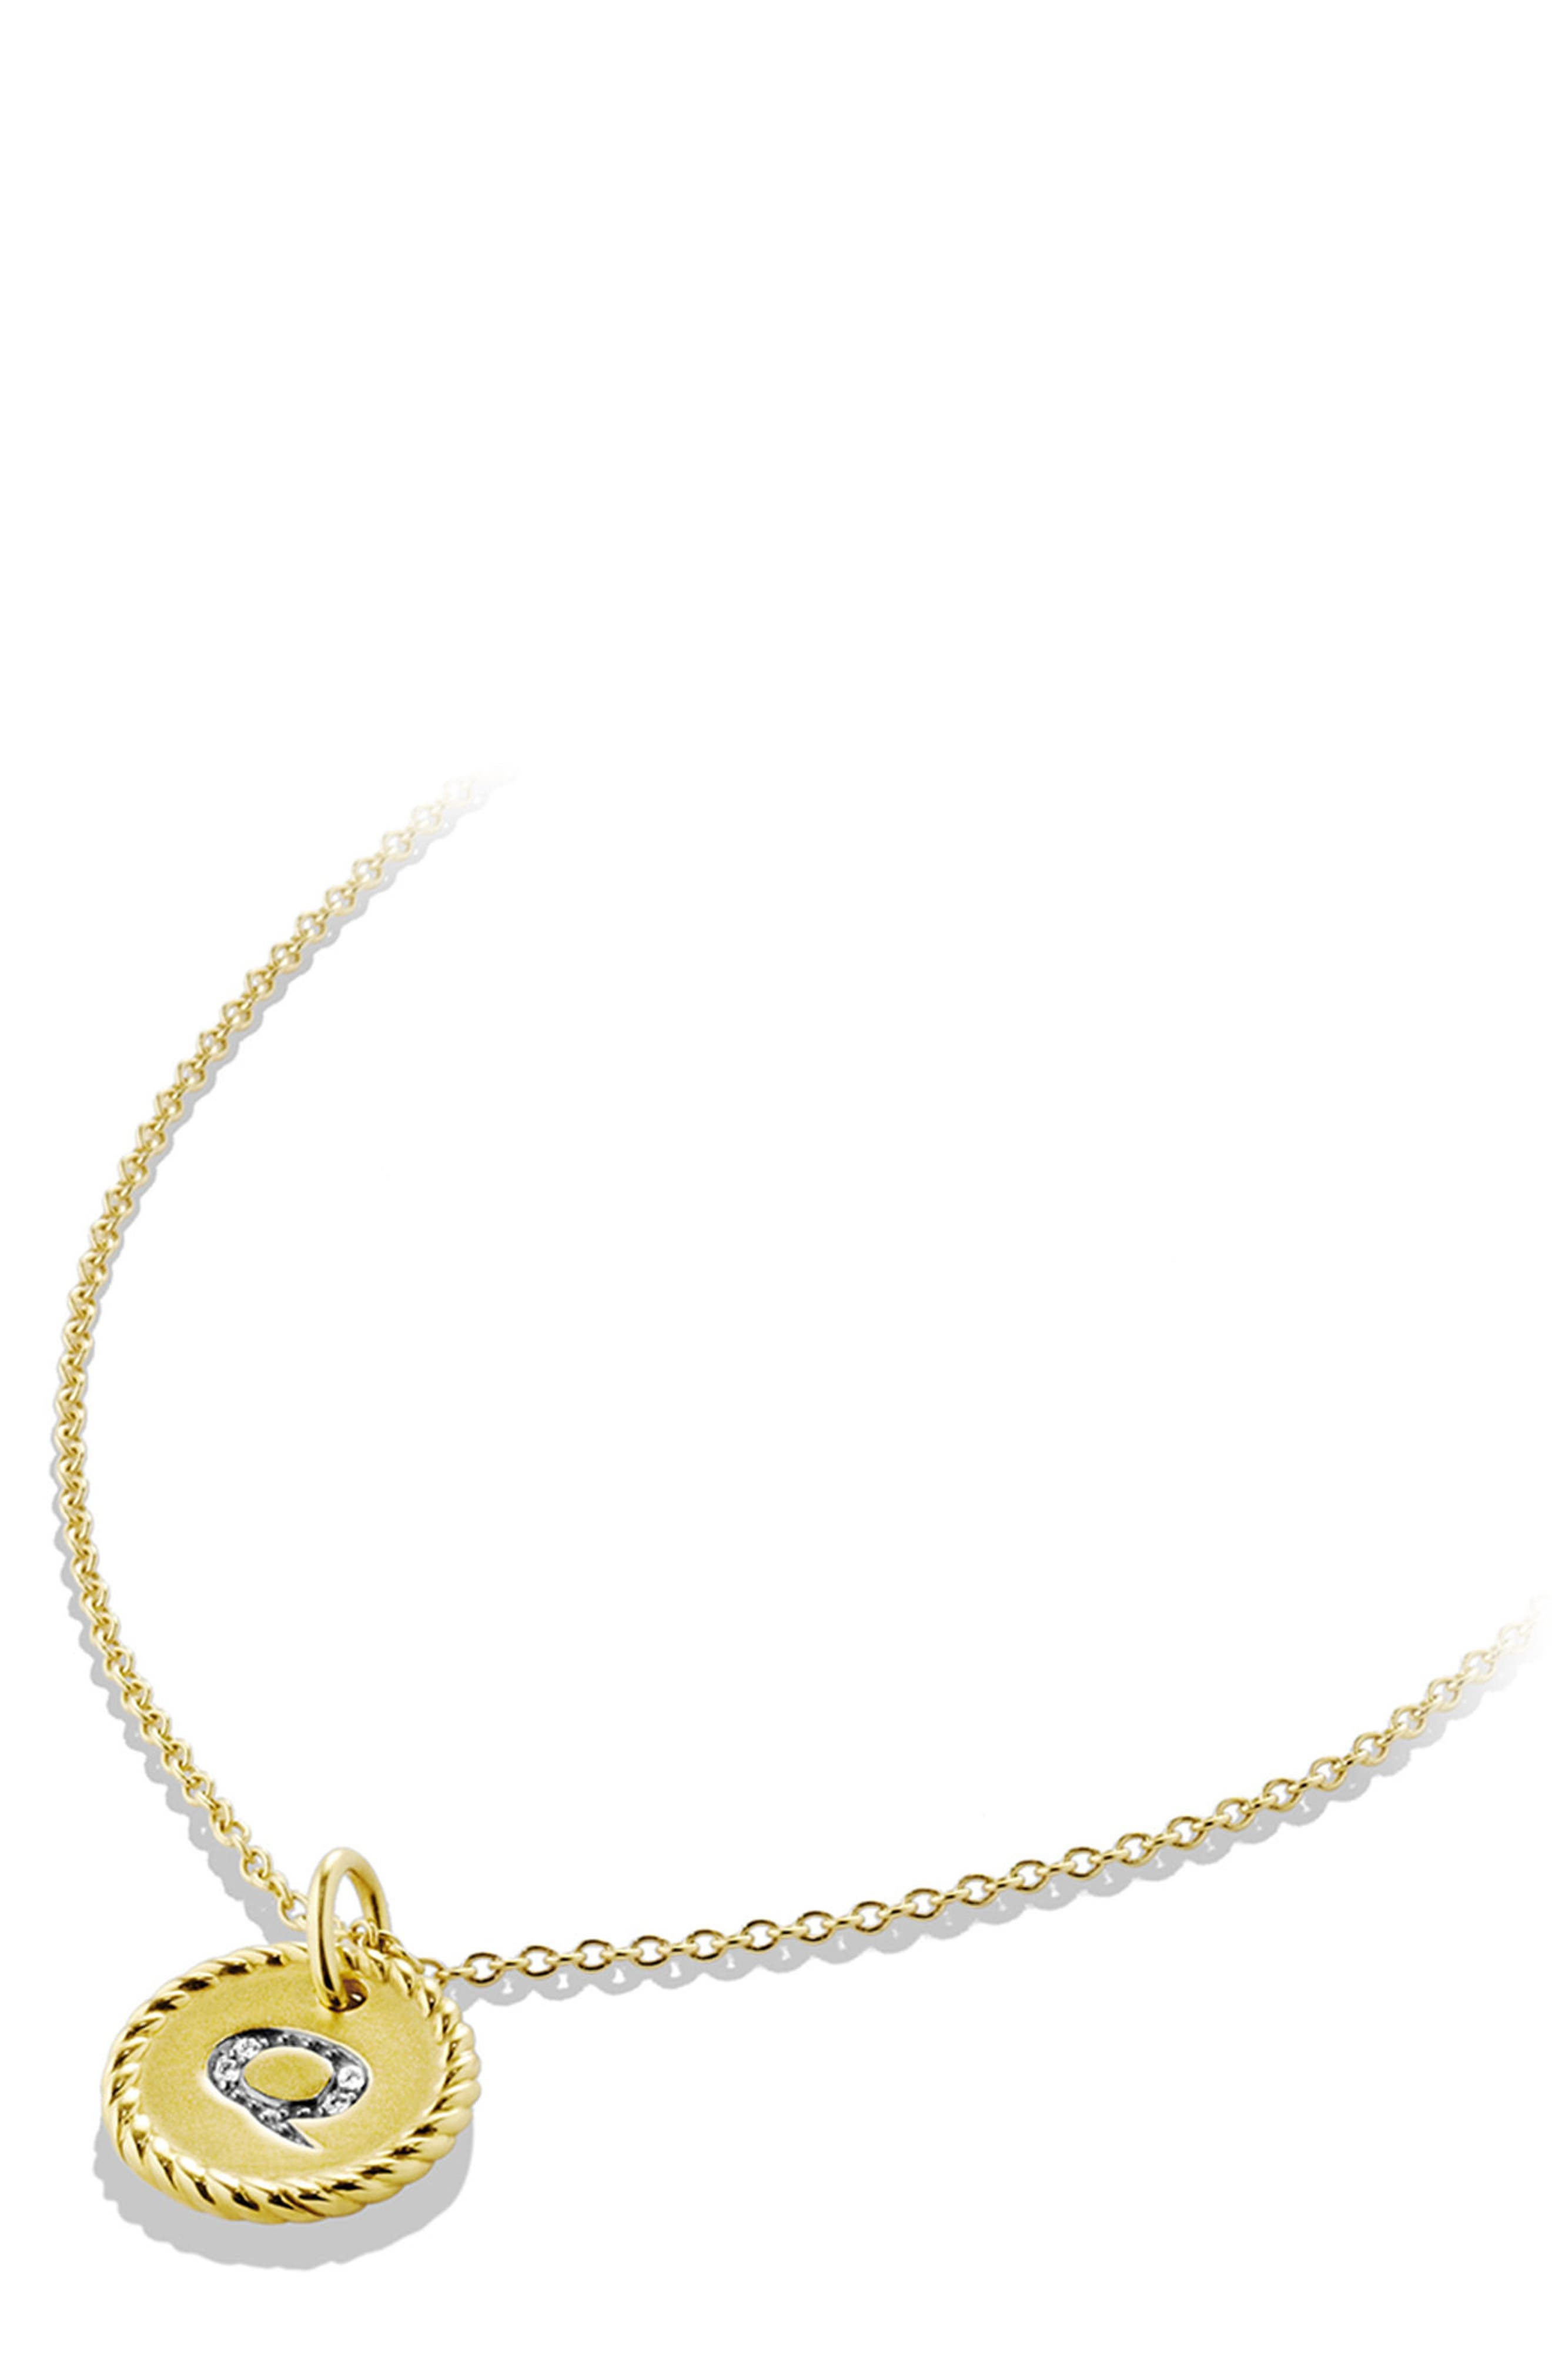 Initial Charm Necklace with Diamonds in 18K Gold,                             Alternate thumbnail 2, color,                             Z